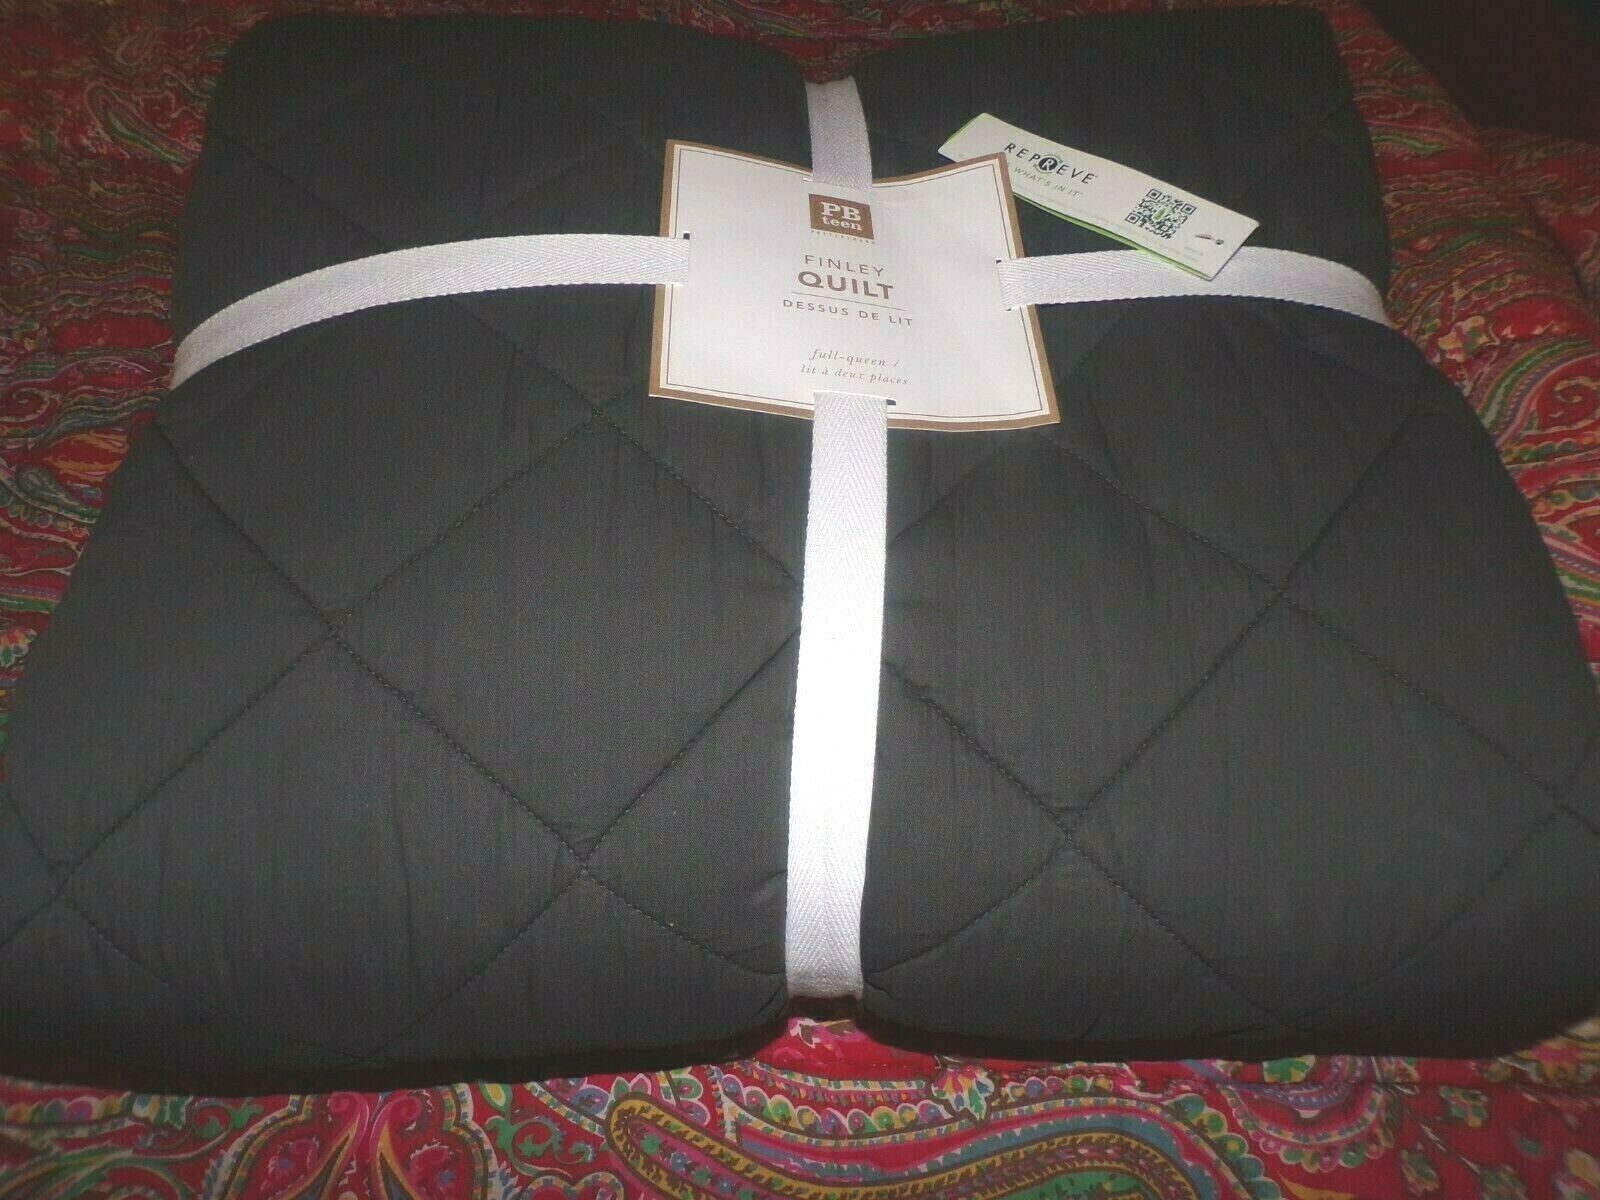 POTTERY BARN Teen Finley Quilt, Complet reine, anthracite, NEUF